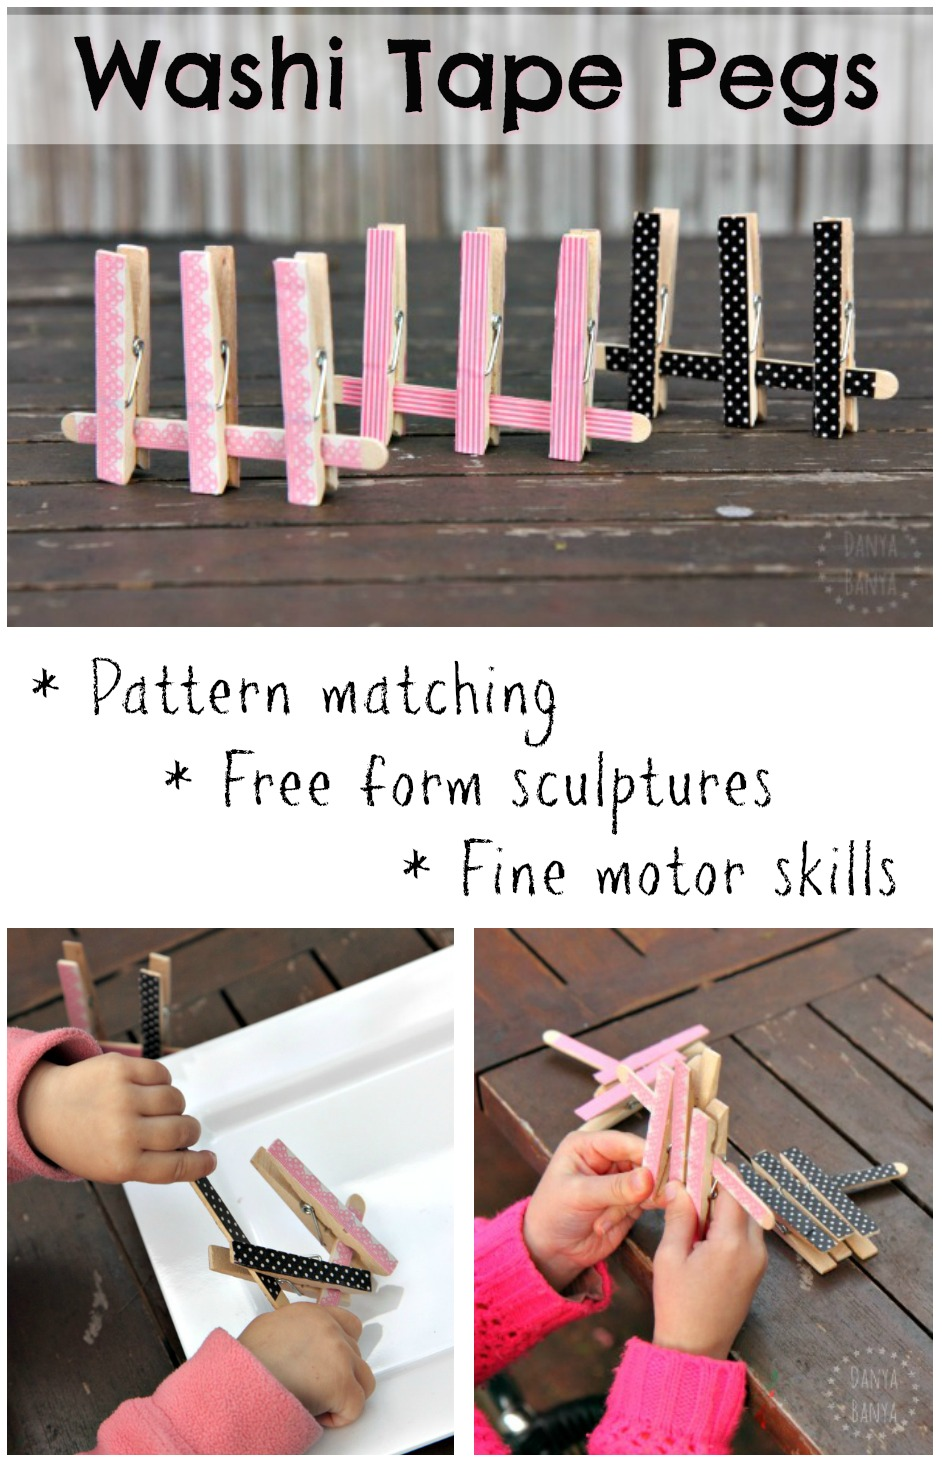 DIY washi tape clothes pin peg game - great for pattern matching, free form sculpture and fine motor skills for toddlers